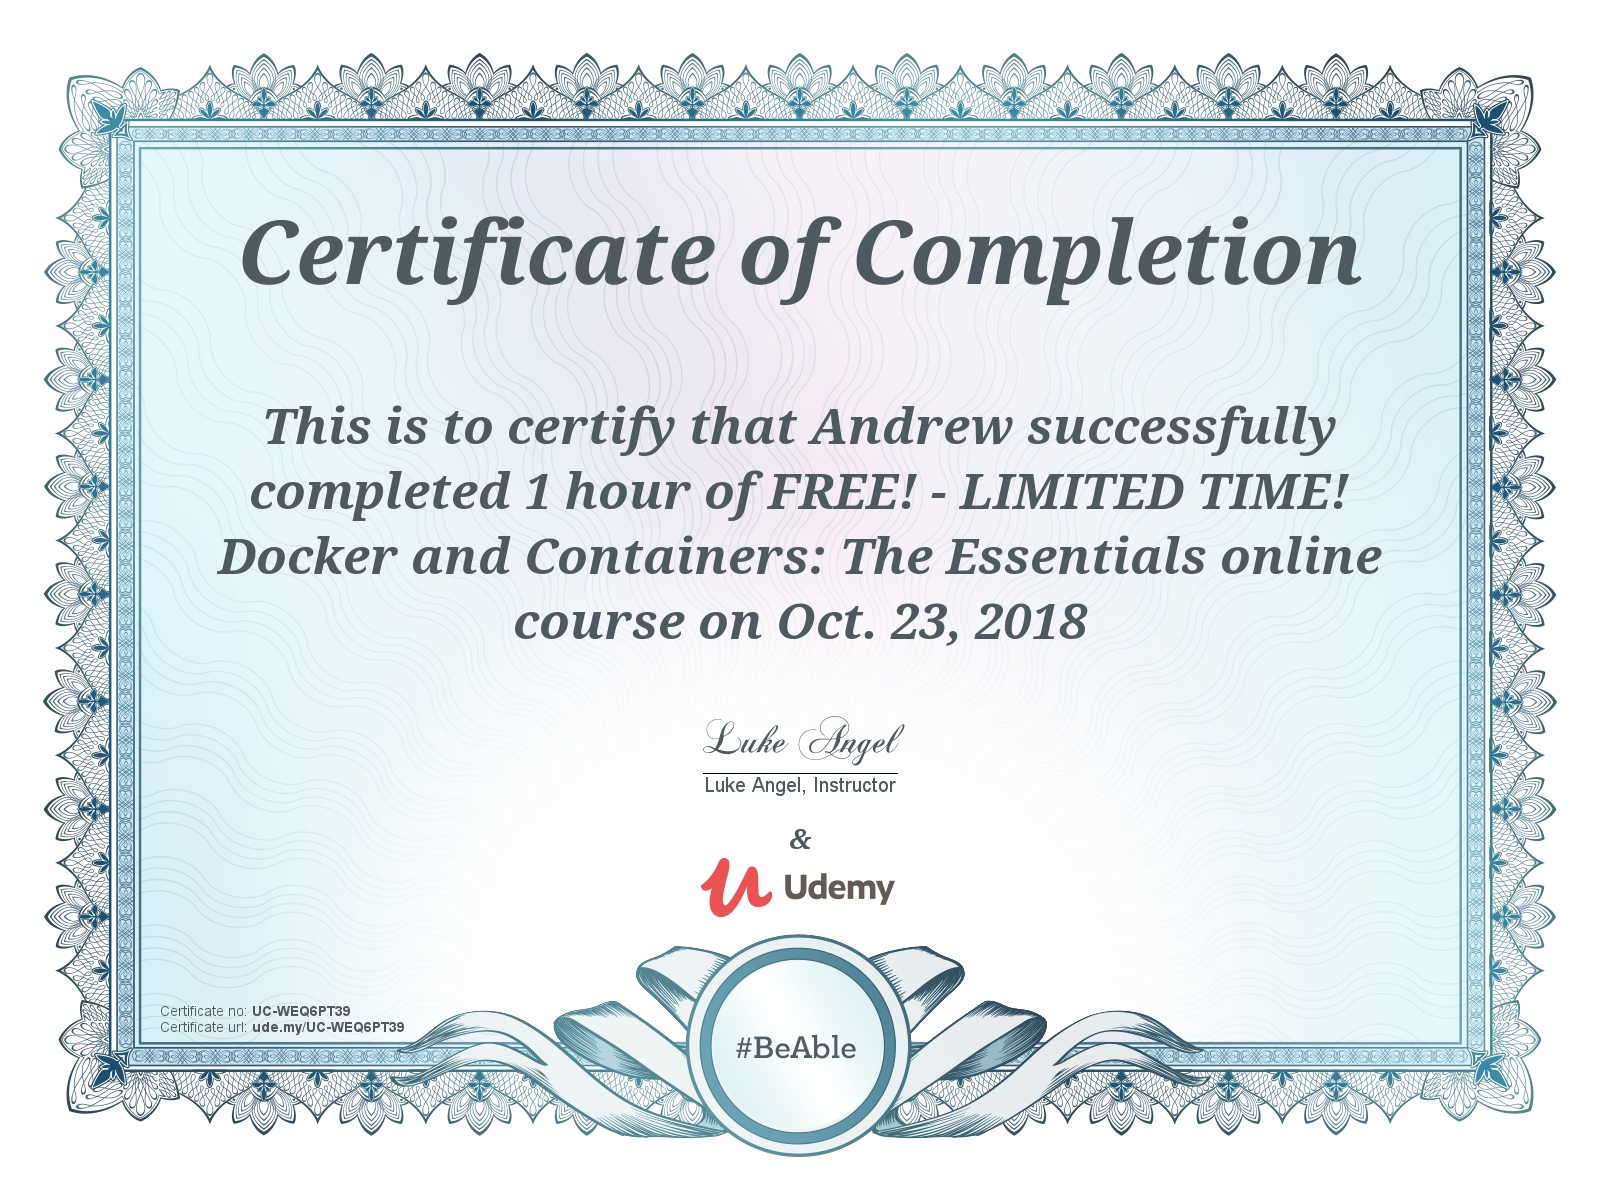 Review of Udemy's Docker and Containers: The Essentials